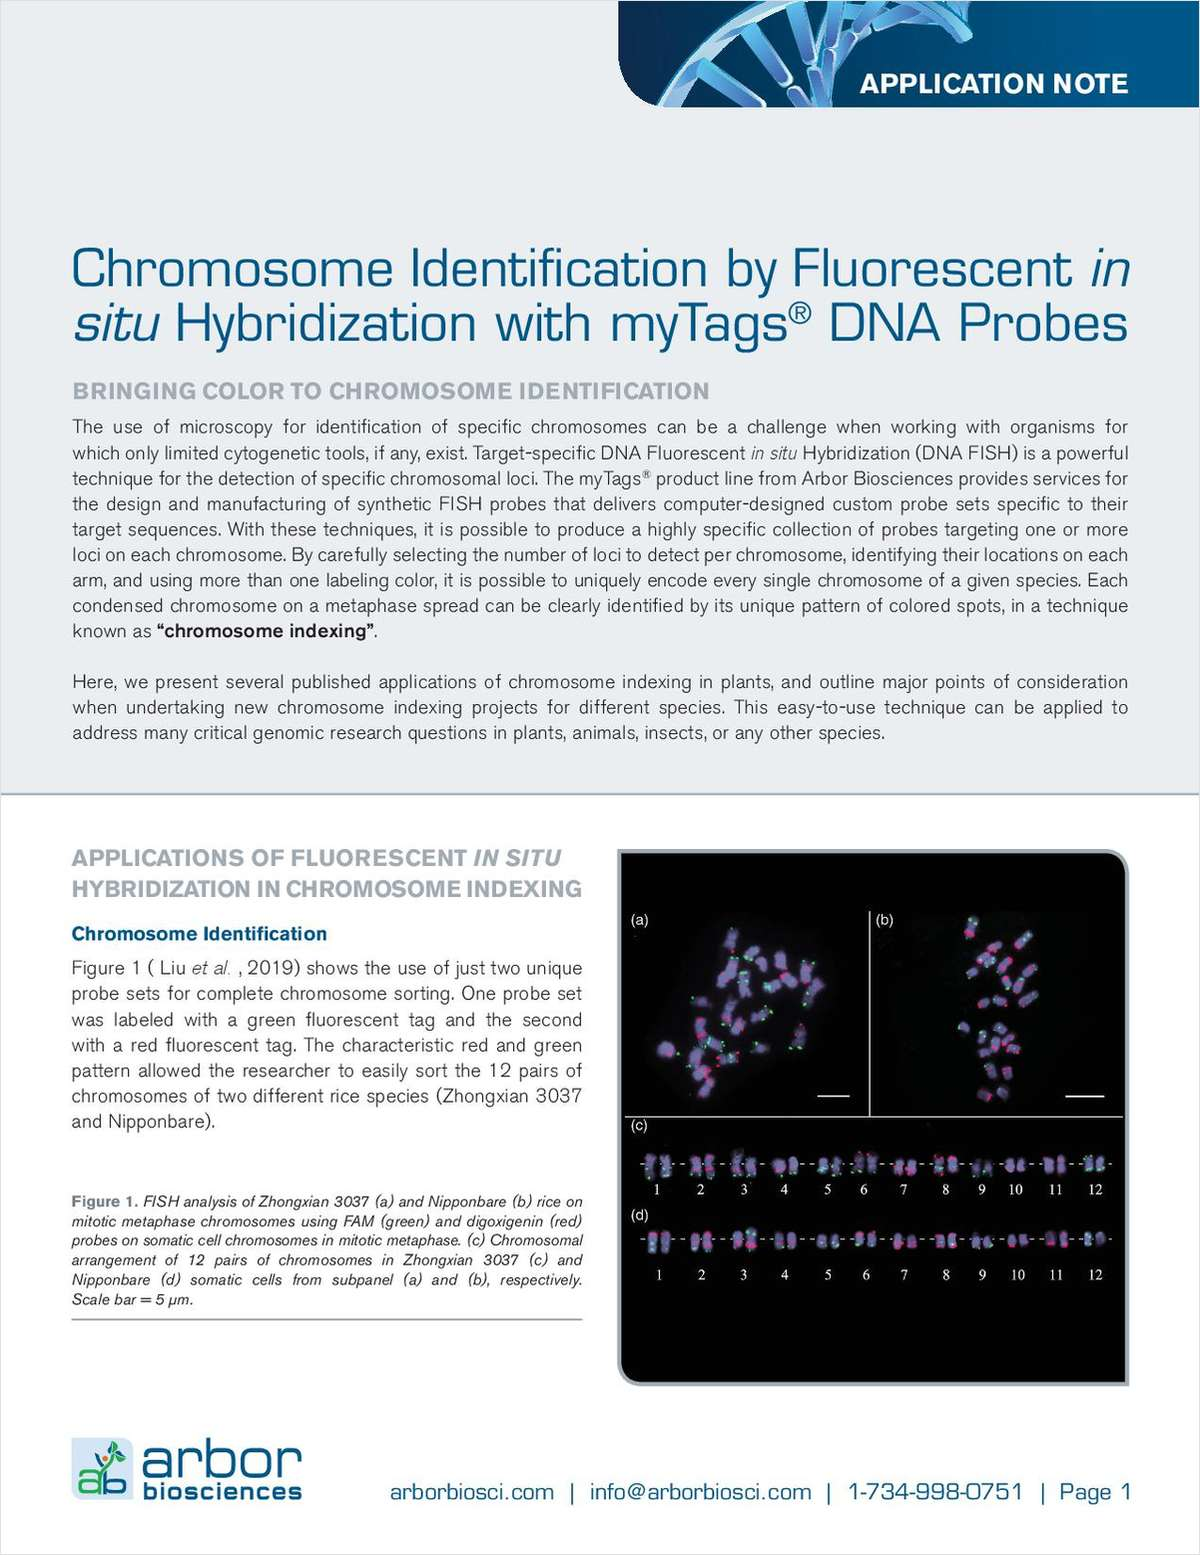 Chromosome Identification by Fluorescent in situ Hybridization with myTags DNA Probes